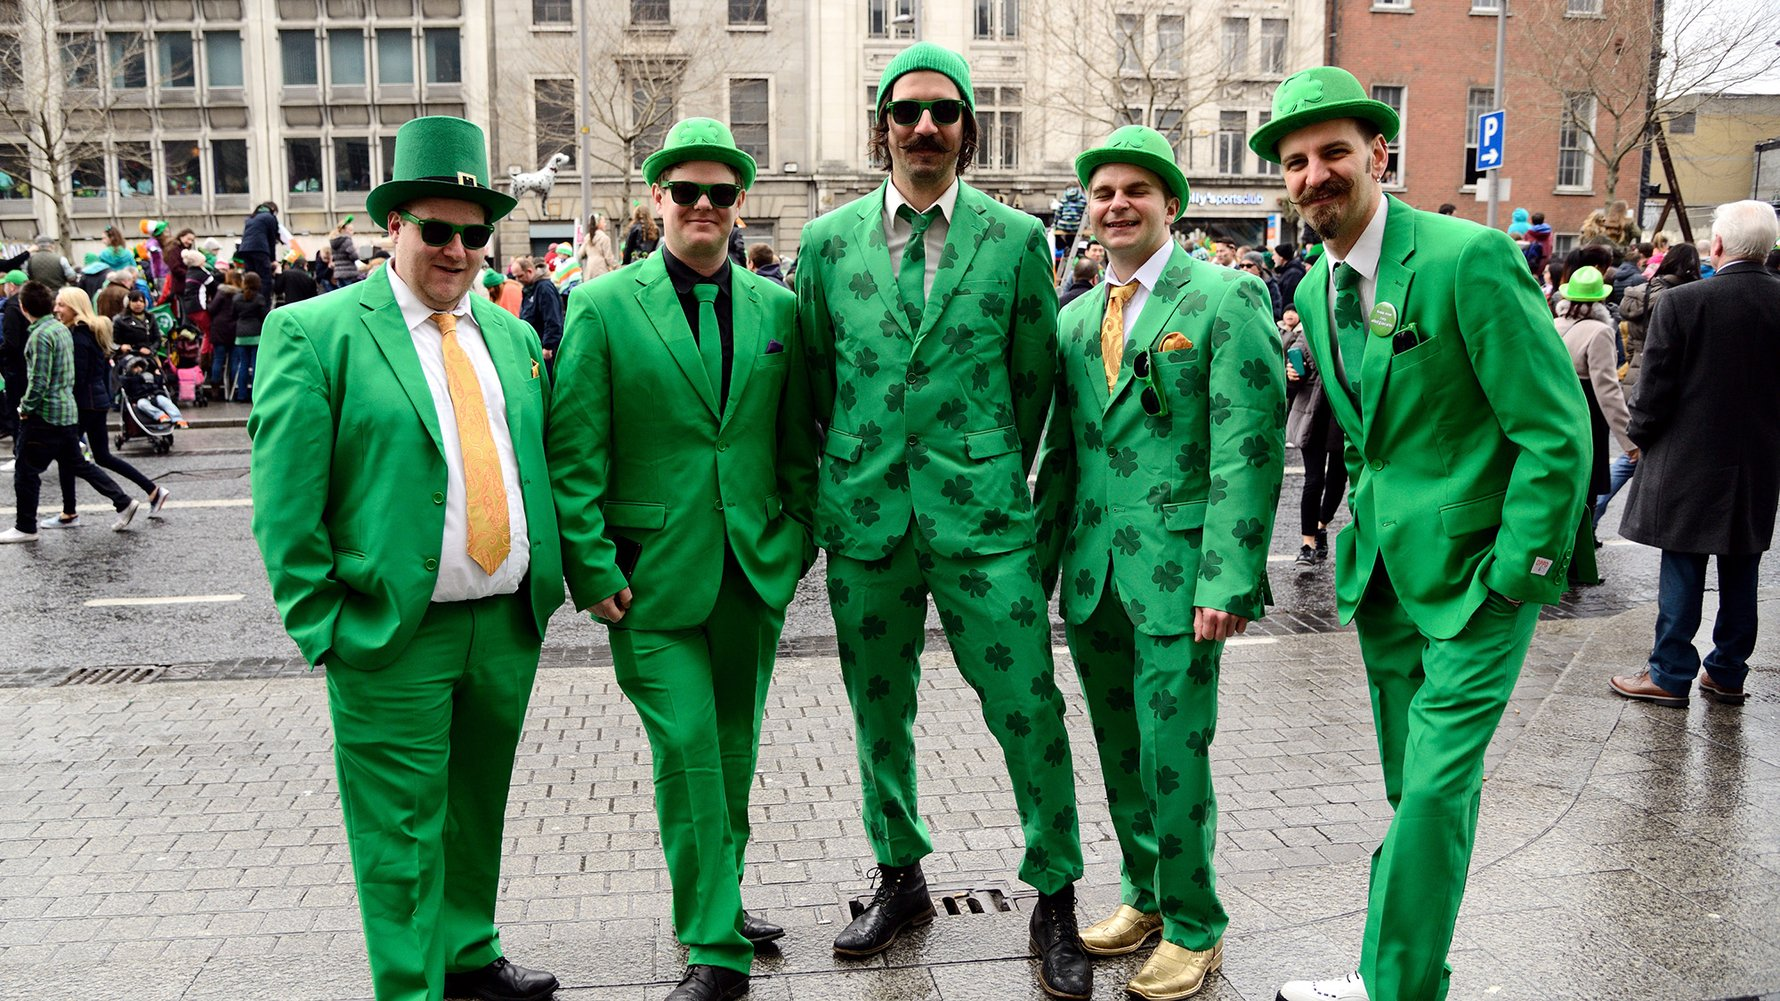 © Q Wang Shutterstock.com St. Patrick`s Day Parade in Dublin, Ireland